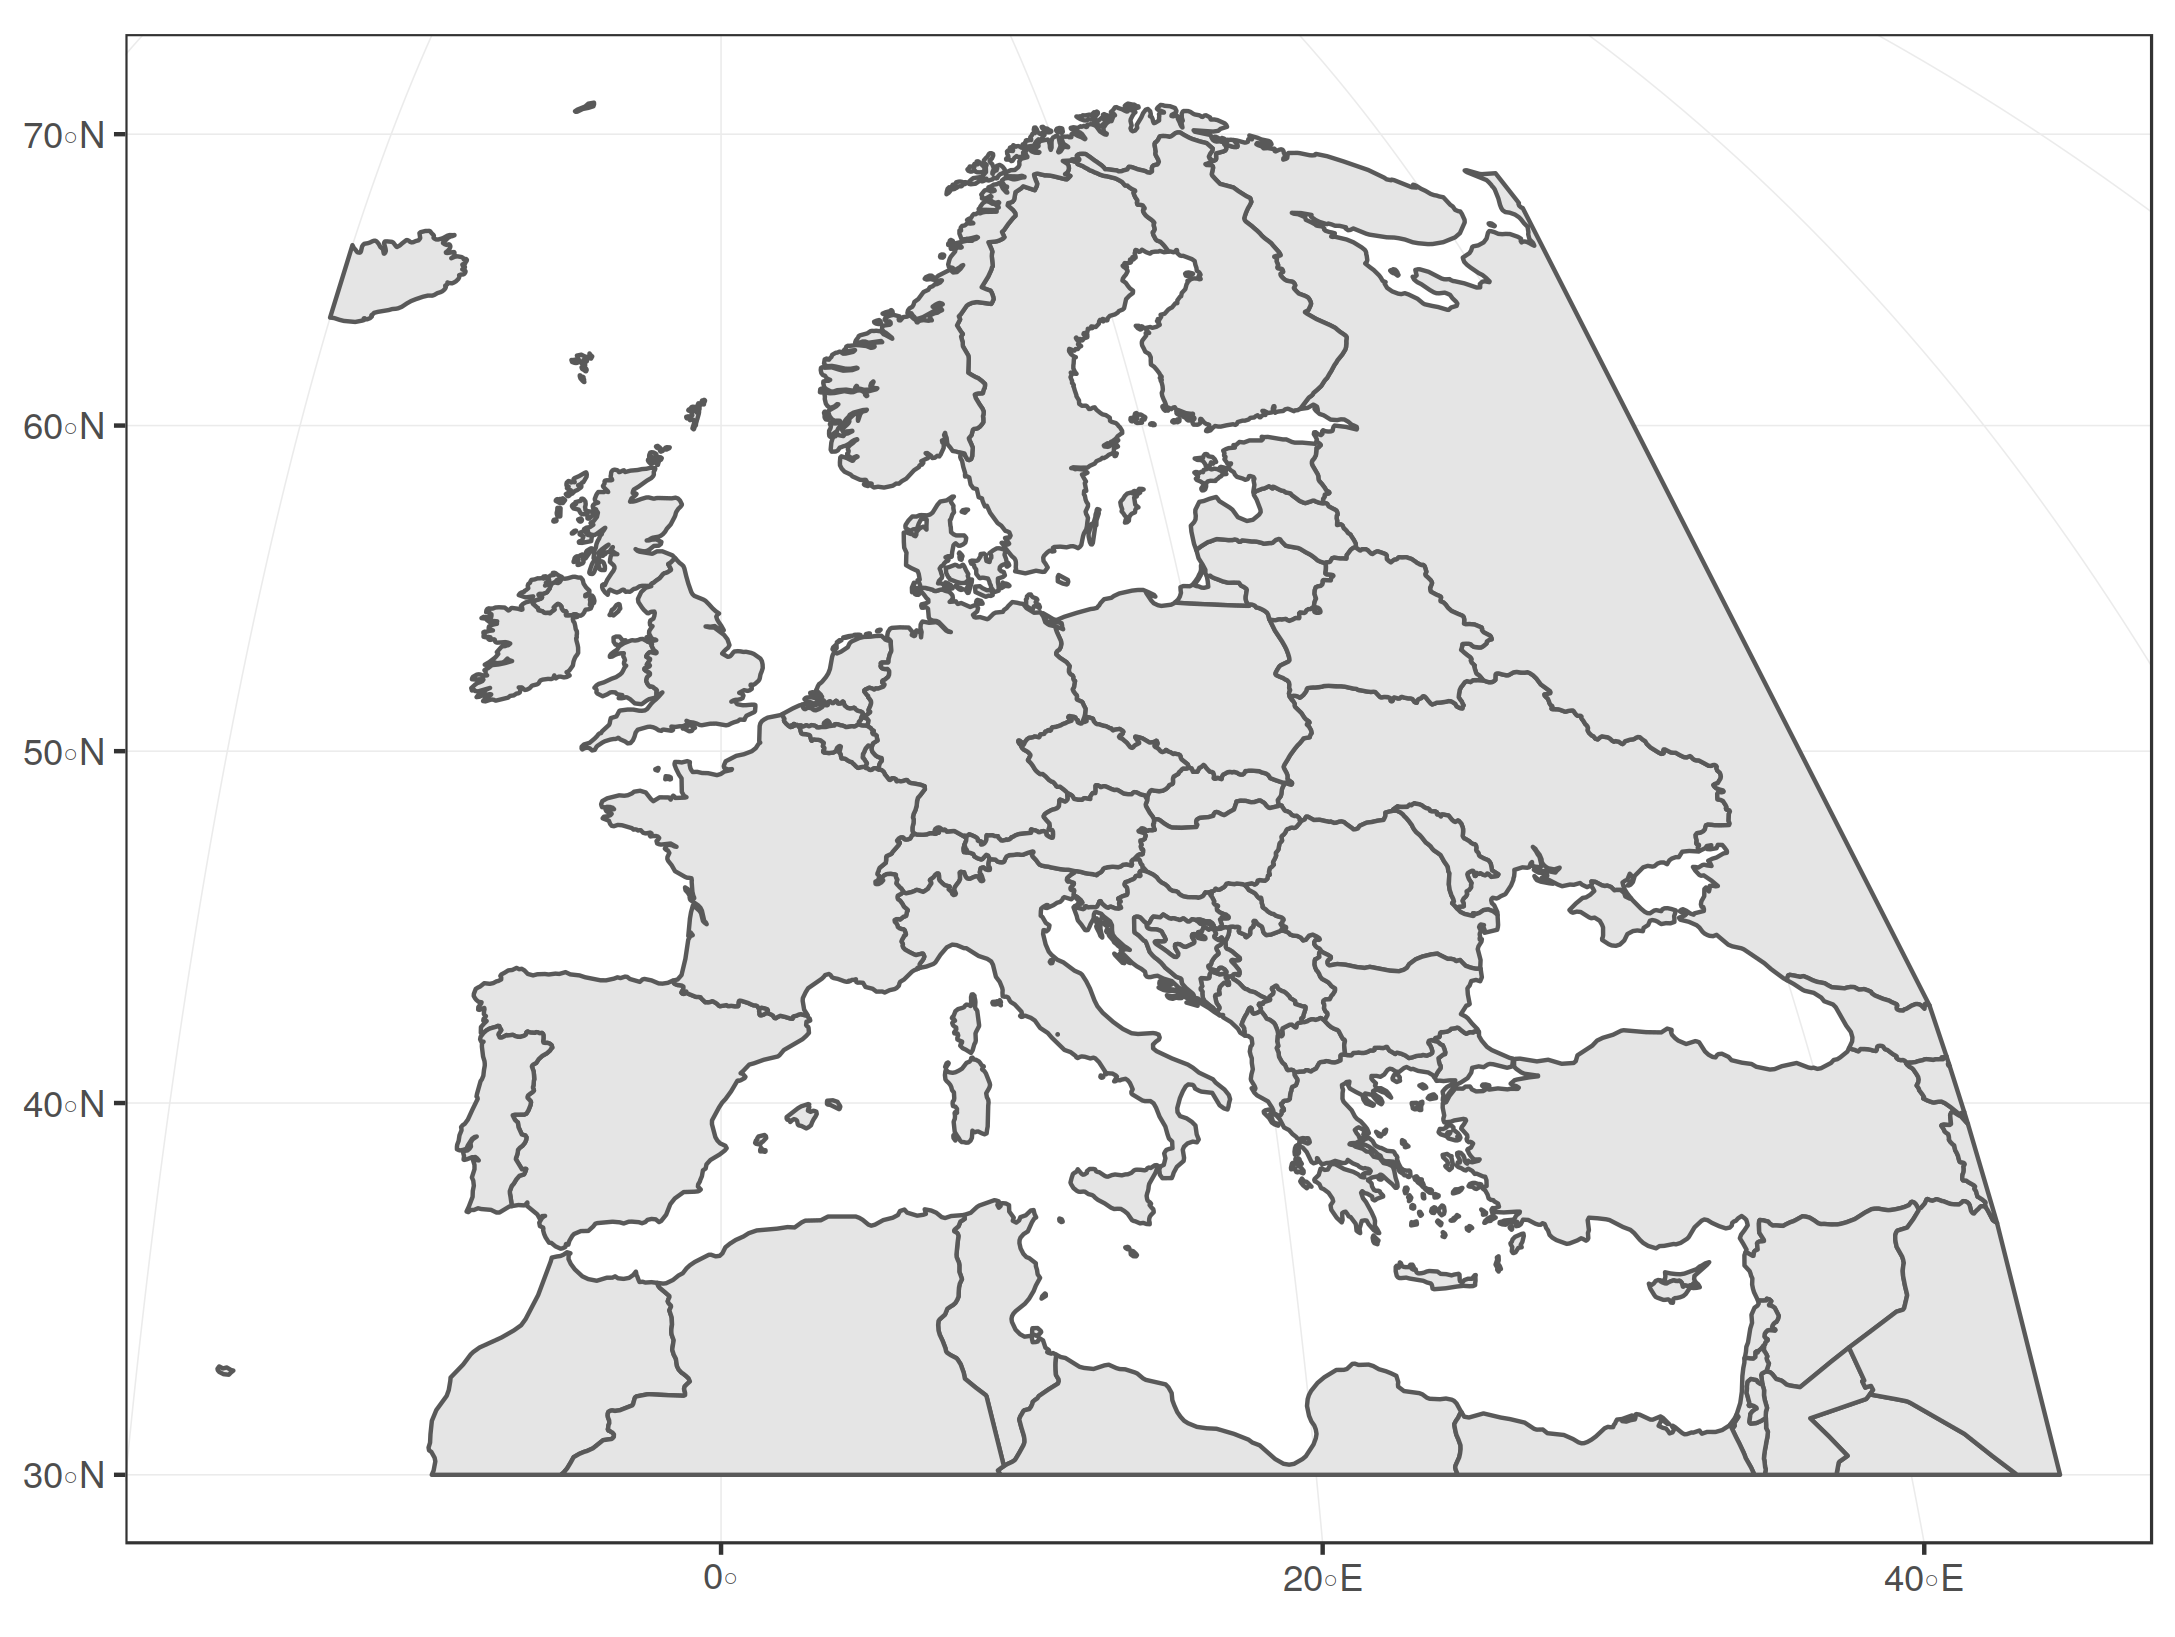 Europe cropped in Mollweide projection